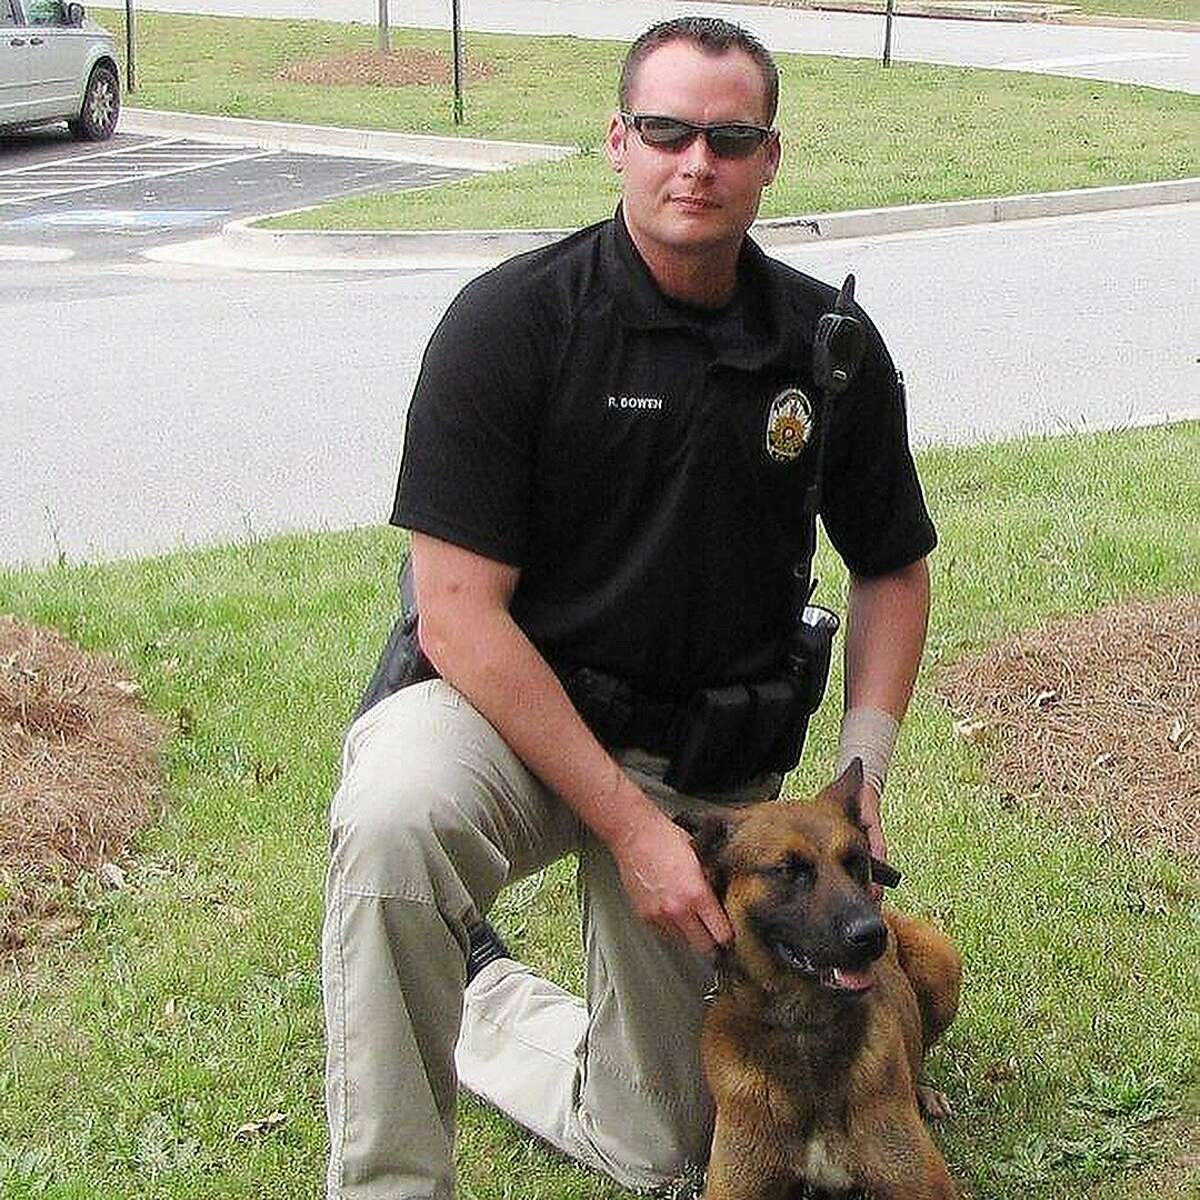 Former A's catcher Rob Bowen works with his first K9 partner, Jester, in Henry County, Ga.